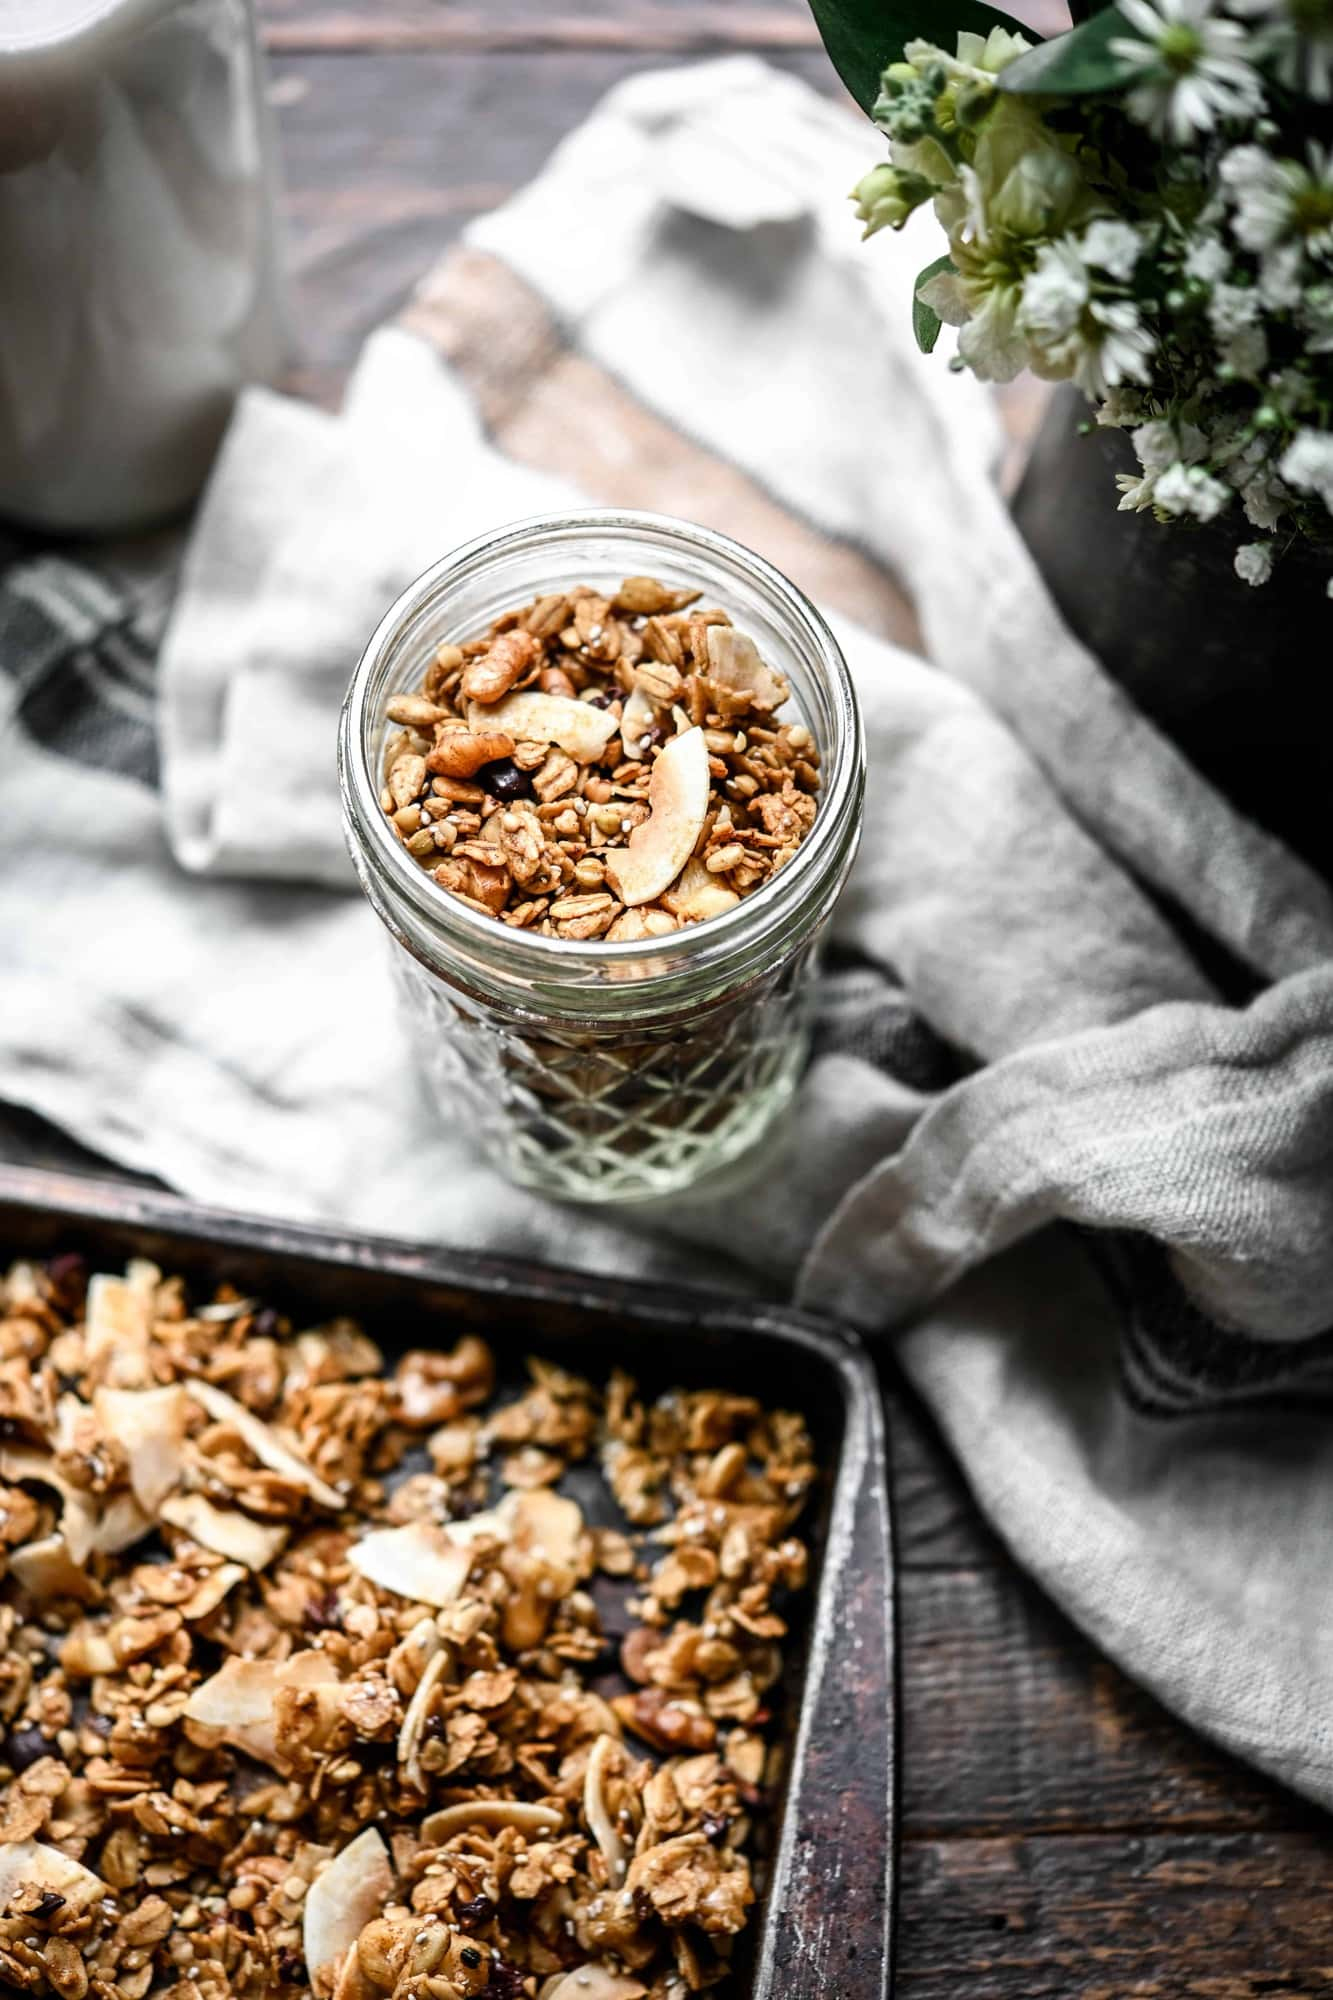 Overhead view of small glass jar filled with gluten free caramel granola